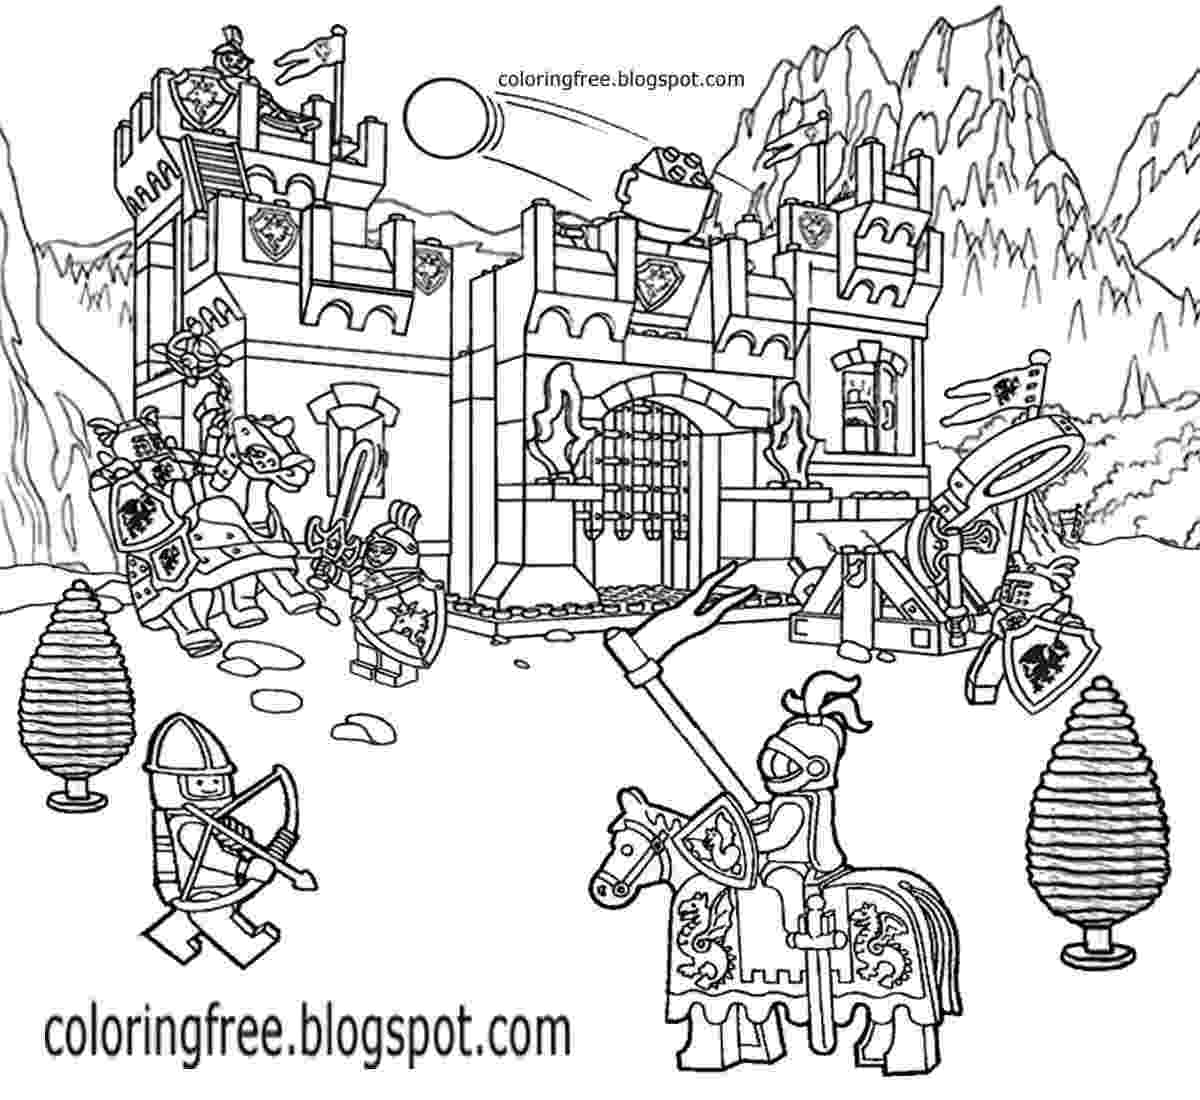 lego city coloring page printable lego city coloring pages for kids clipart lego city page coloring